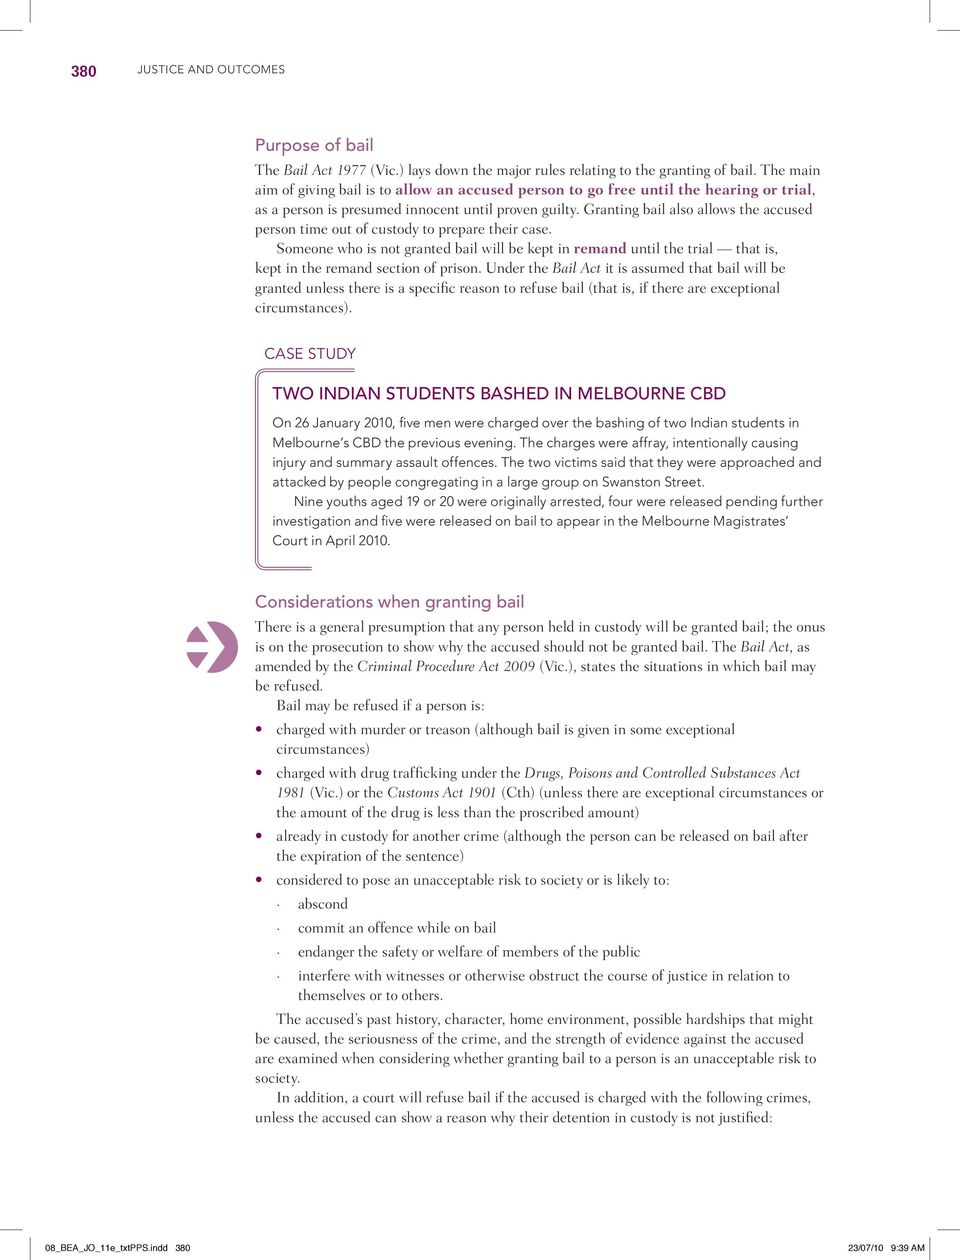 oxford justice and outcomes 12 pdf